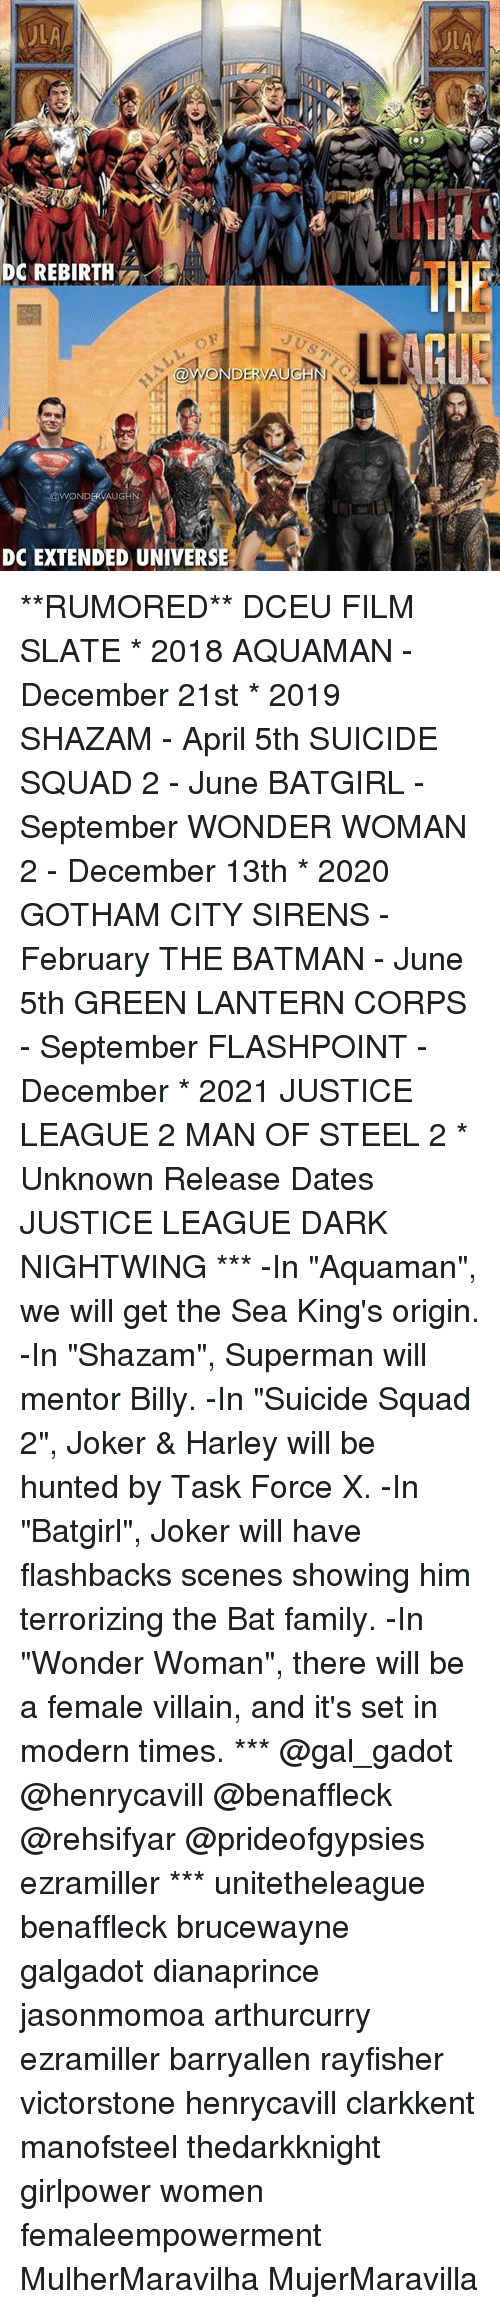 "Green Lantern: DC REBIRTH  LE  OWONDERVAUGH  ND  DC EXTENDED UNIVERSE **RUMORED** DCEU FILM SLATE * 2018 AQUAMAN - December 21st * 2019 SHAZAM - April 5th SUICIDE SQUAD 2 - June BATGIRL - September WONDER WOMAN 2 - December 13th * 2020 GOTHAM CITY SIRENS - February THE BATMAN - June 5th GREEN LANTERN CORPS - September FLASHPOINT - December * 2021 JUSTICE LEAGUE 2 MAN OF STEEL 2 * Unknown Release Dates JUSTICE LEAGUE DARK NIGHTWING *** -In ""Aquaman"", we will get the Sea King's origin. -In ""Shazam"", Superman will mentor Billy. -In ""Suicide Squad 2"", Joker & Harley will be hunted by Task Force X. -In ""Batgirl"", Joker will have flashbacks scenes showing him terrorizing the Bat family. -In ""Wonder Woman"", there will be a female villain, and it's set in modern times. *** @gal_gadot @henrycavill @benaffleck @rehsifyar @prideofgypsies ezramiller *** unitetheleague benaffleck brucewayne galgadot dianaprince jasonmomoa arthurcurry ezramiller barryallen rayfisher victorstone henrycavill clarkkent manofsteel thedarkknight girlpower women femaleempowerment MulherMaravilha MujerMaravilla"